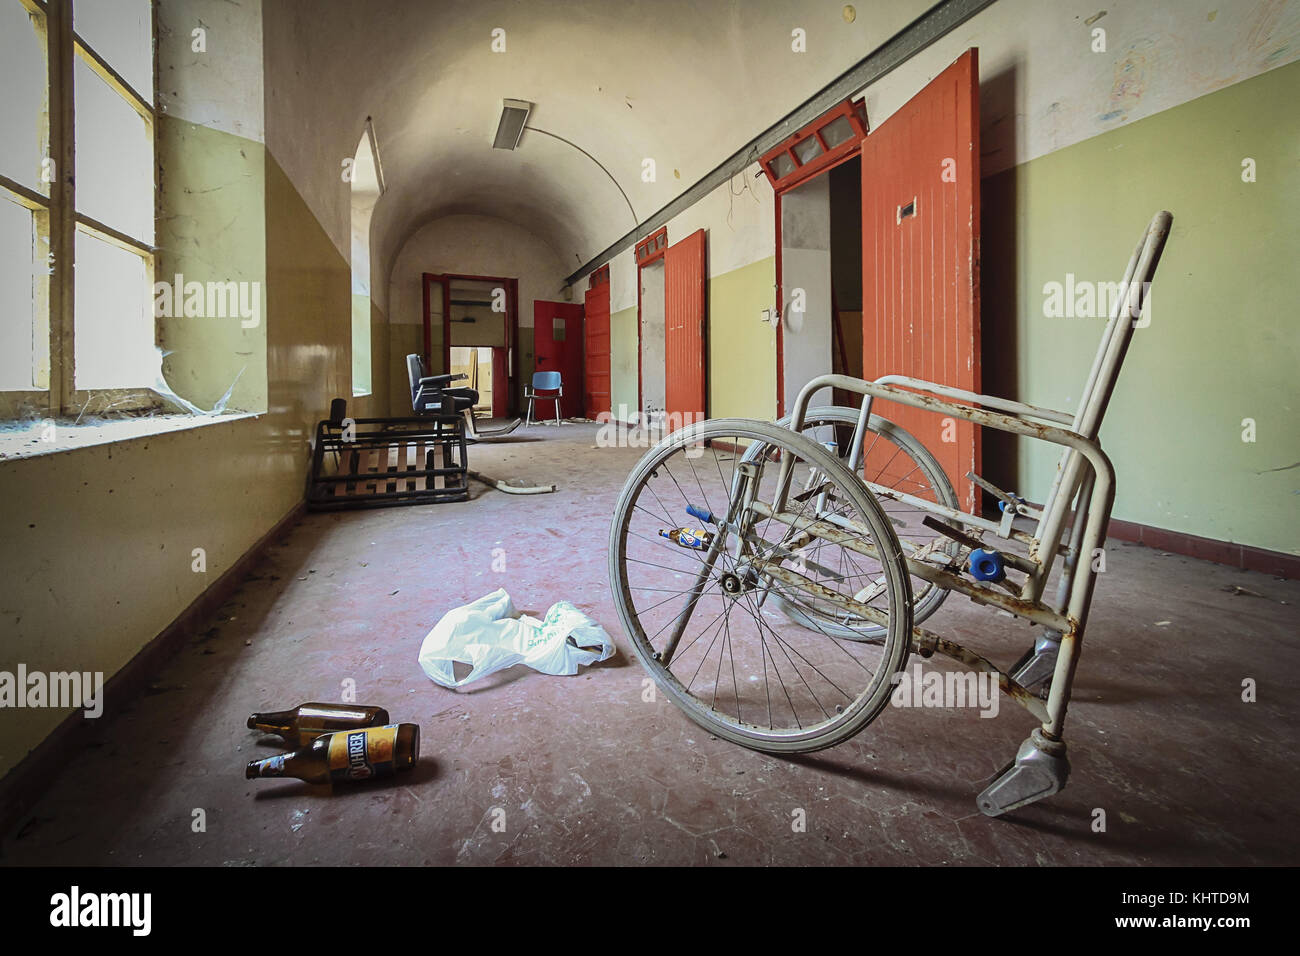 Interior of the abandoned psychiatric hospital in Colorno, Italy. - Stock Image